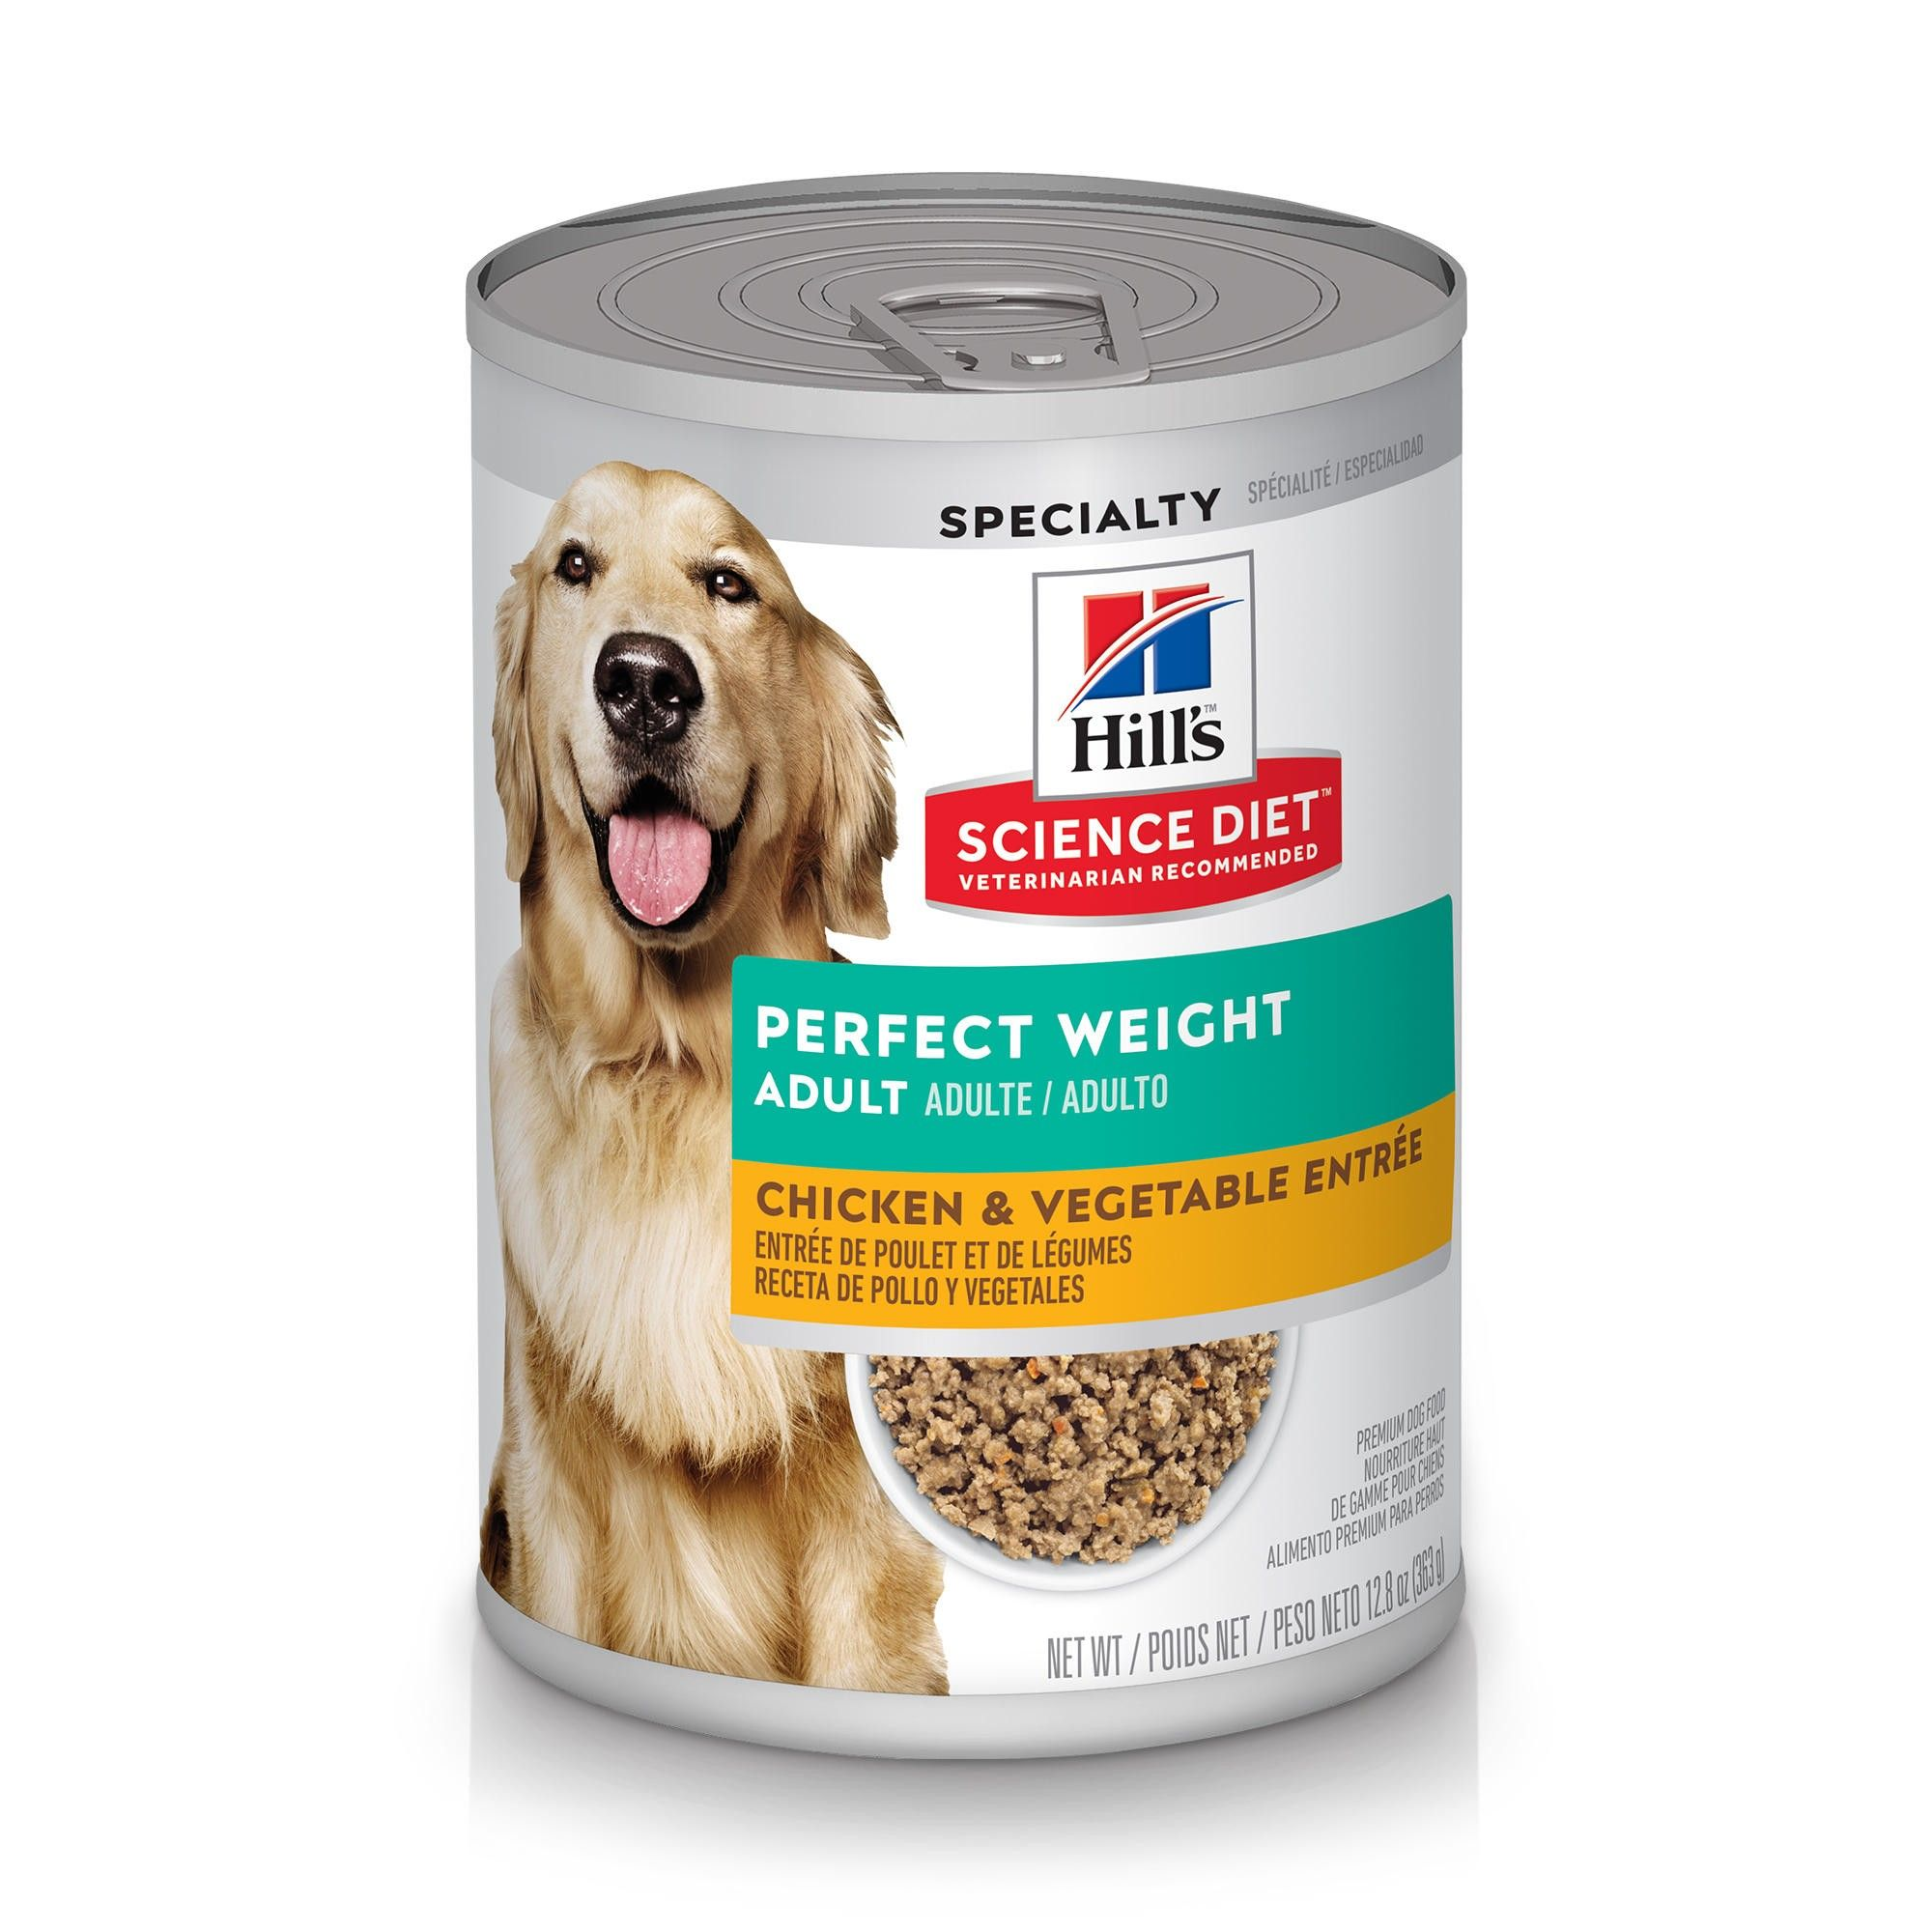 Hill's Science Diet Adult Perfect Weight Chicken & Vegetables Entree Canned Dog Food, 12.8-oz,